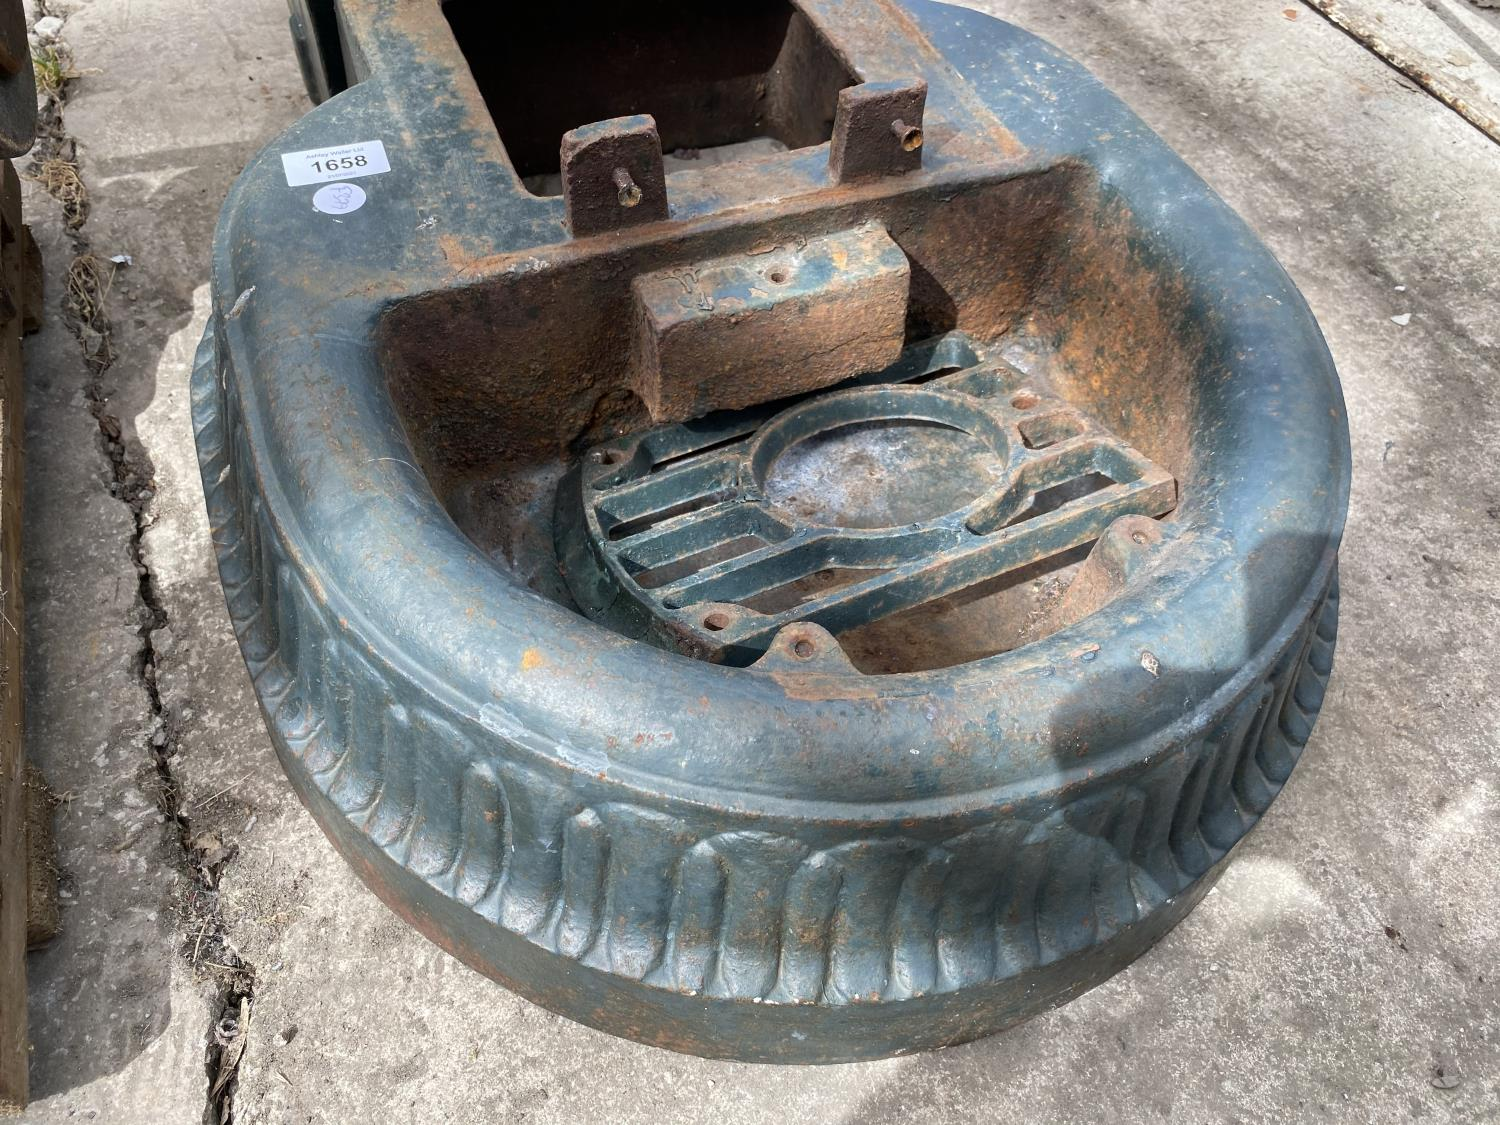 A VINTAGE CAST IRON WATER PUMP - Image 4 of 5